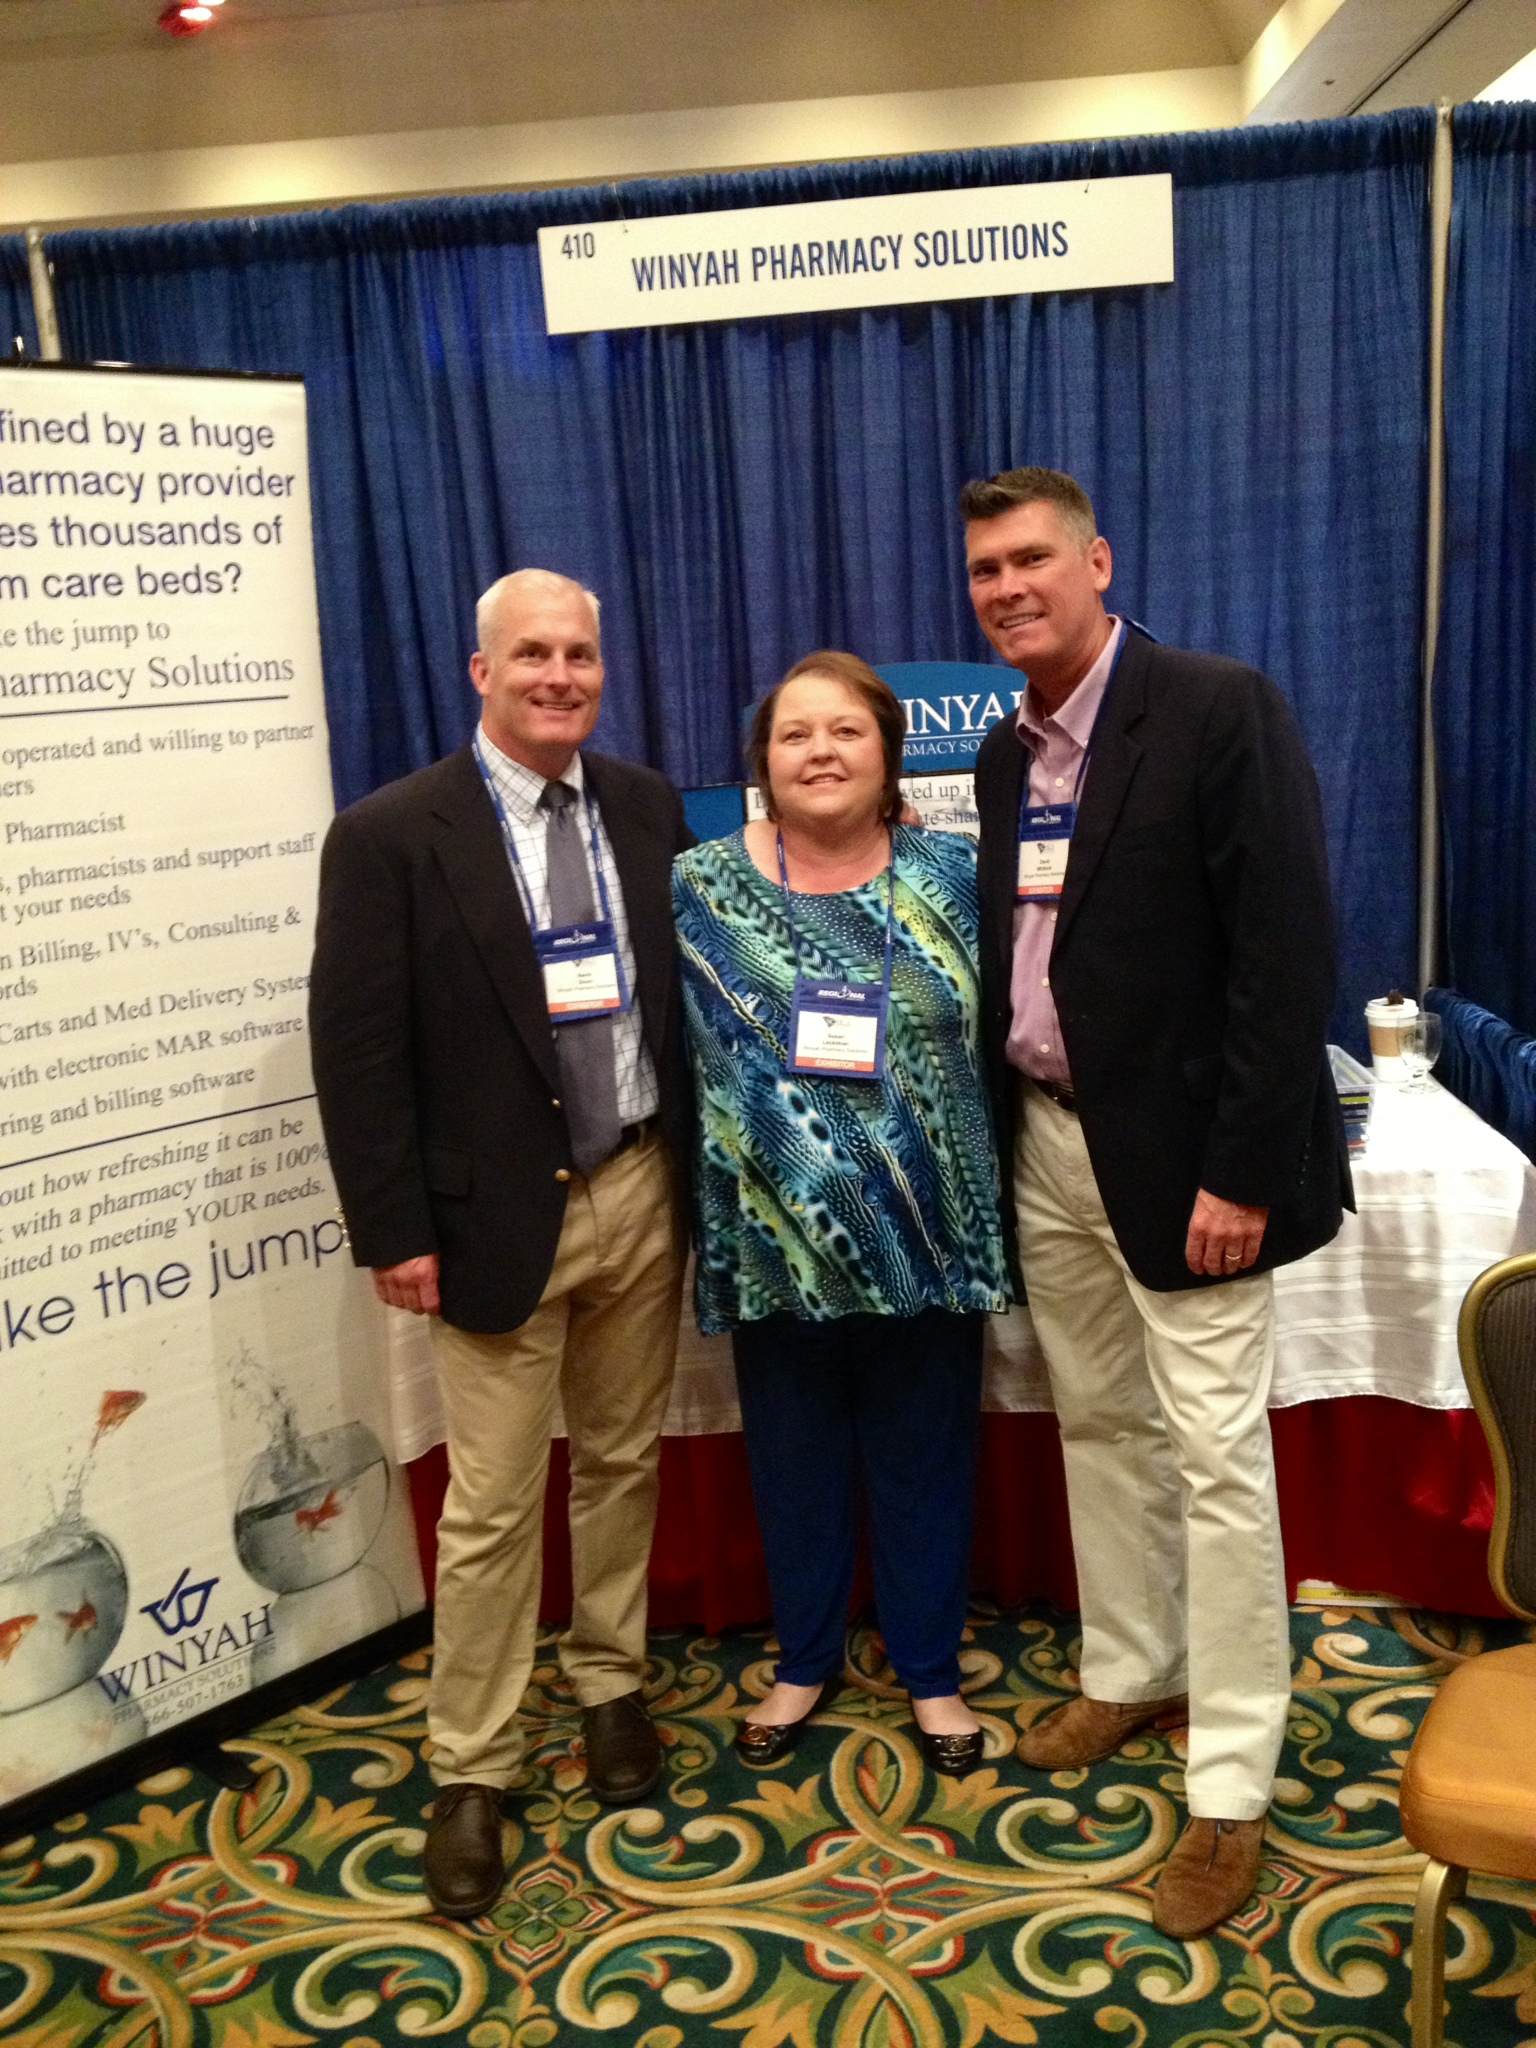 Kevin Dixon, sales director; Susan Lecklitner, clinical account manager; David Whitlock, president.